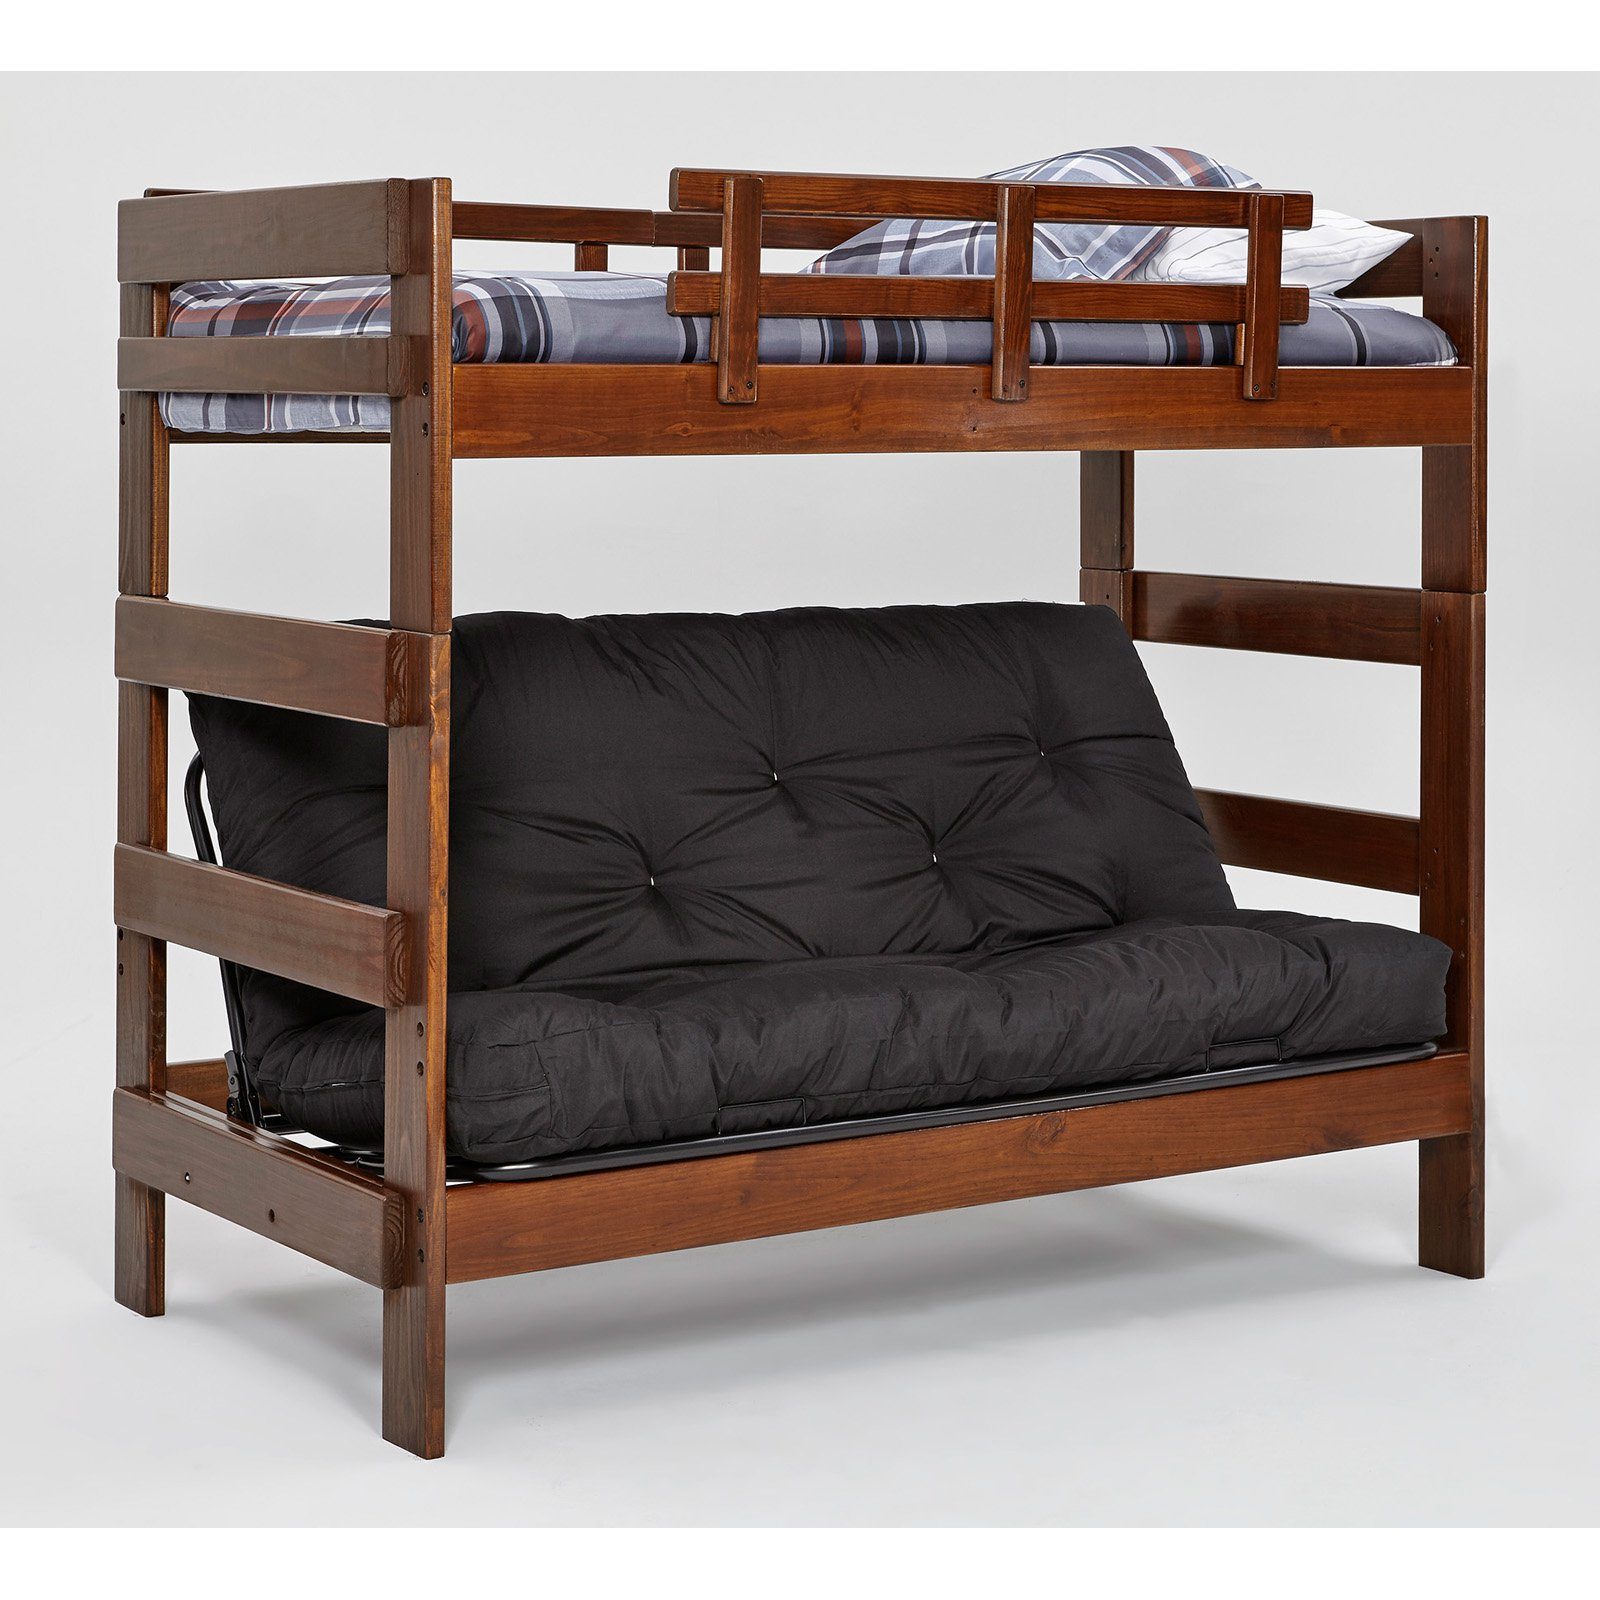 Woodcrest Heartland Chocolate Futon Bunk Bed Walmart Com